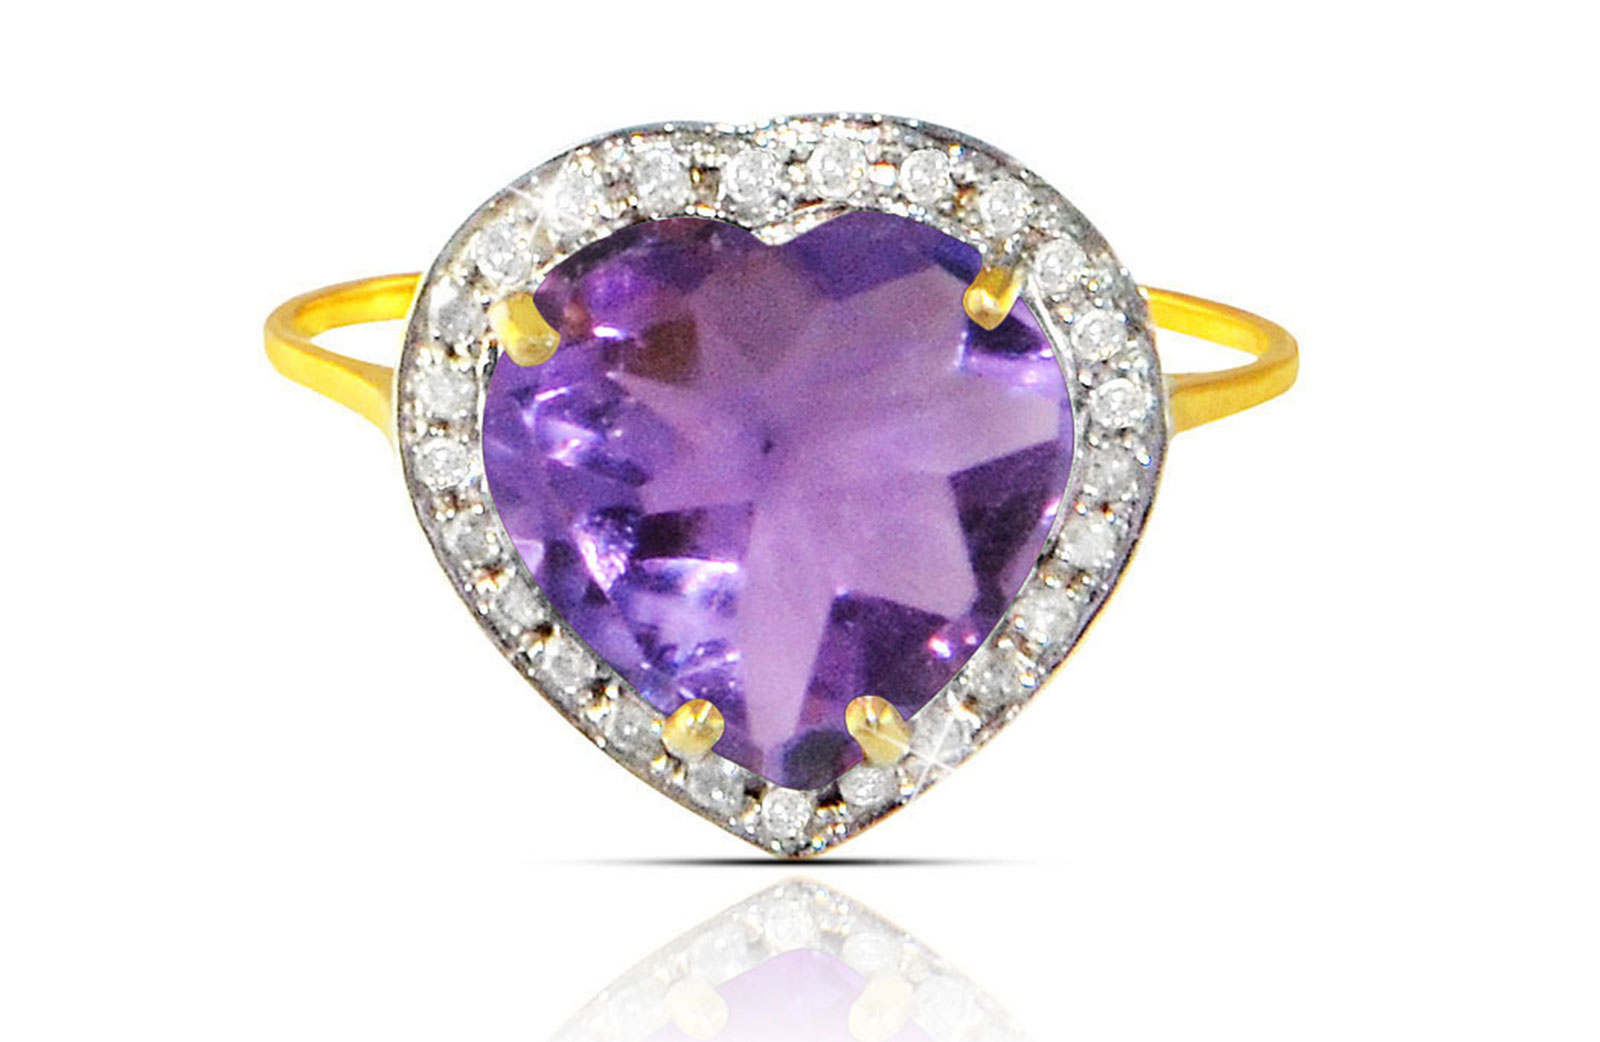 Vera Perla  18k  Gold 10mm Genuine Heart   Cut Amethyst 0.14Ct Genuine Diamonds Ring -SIZE 6.5 US